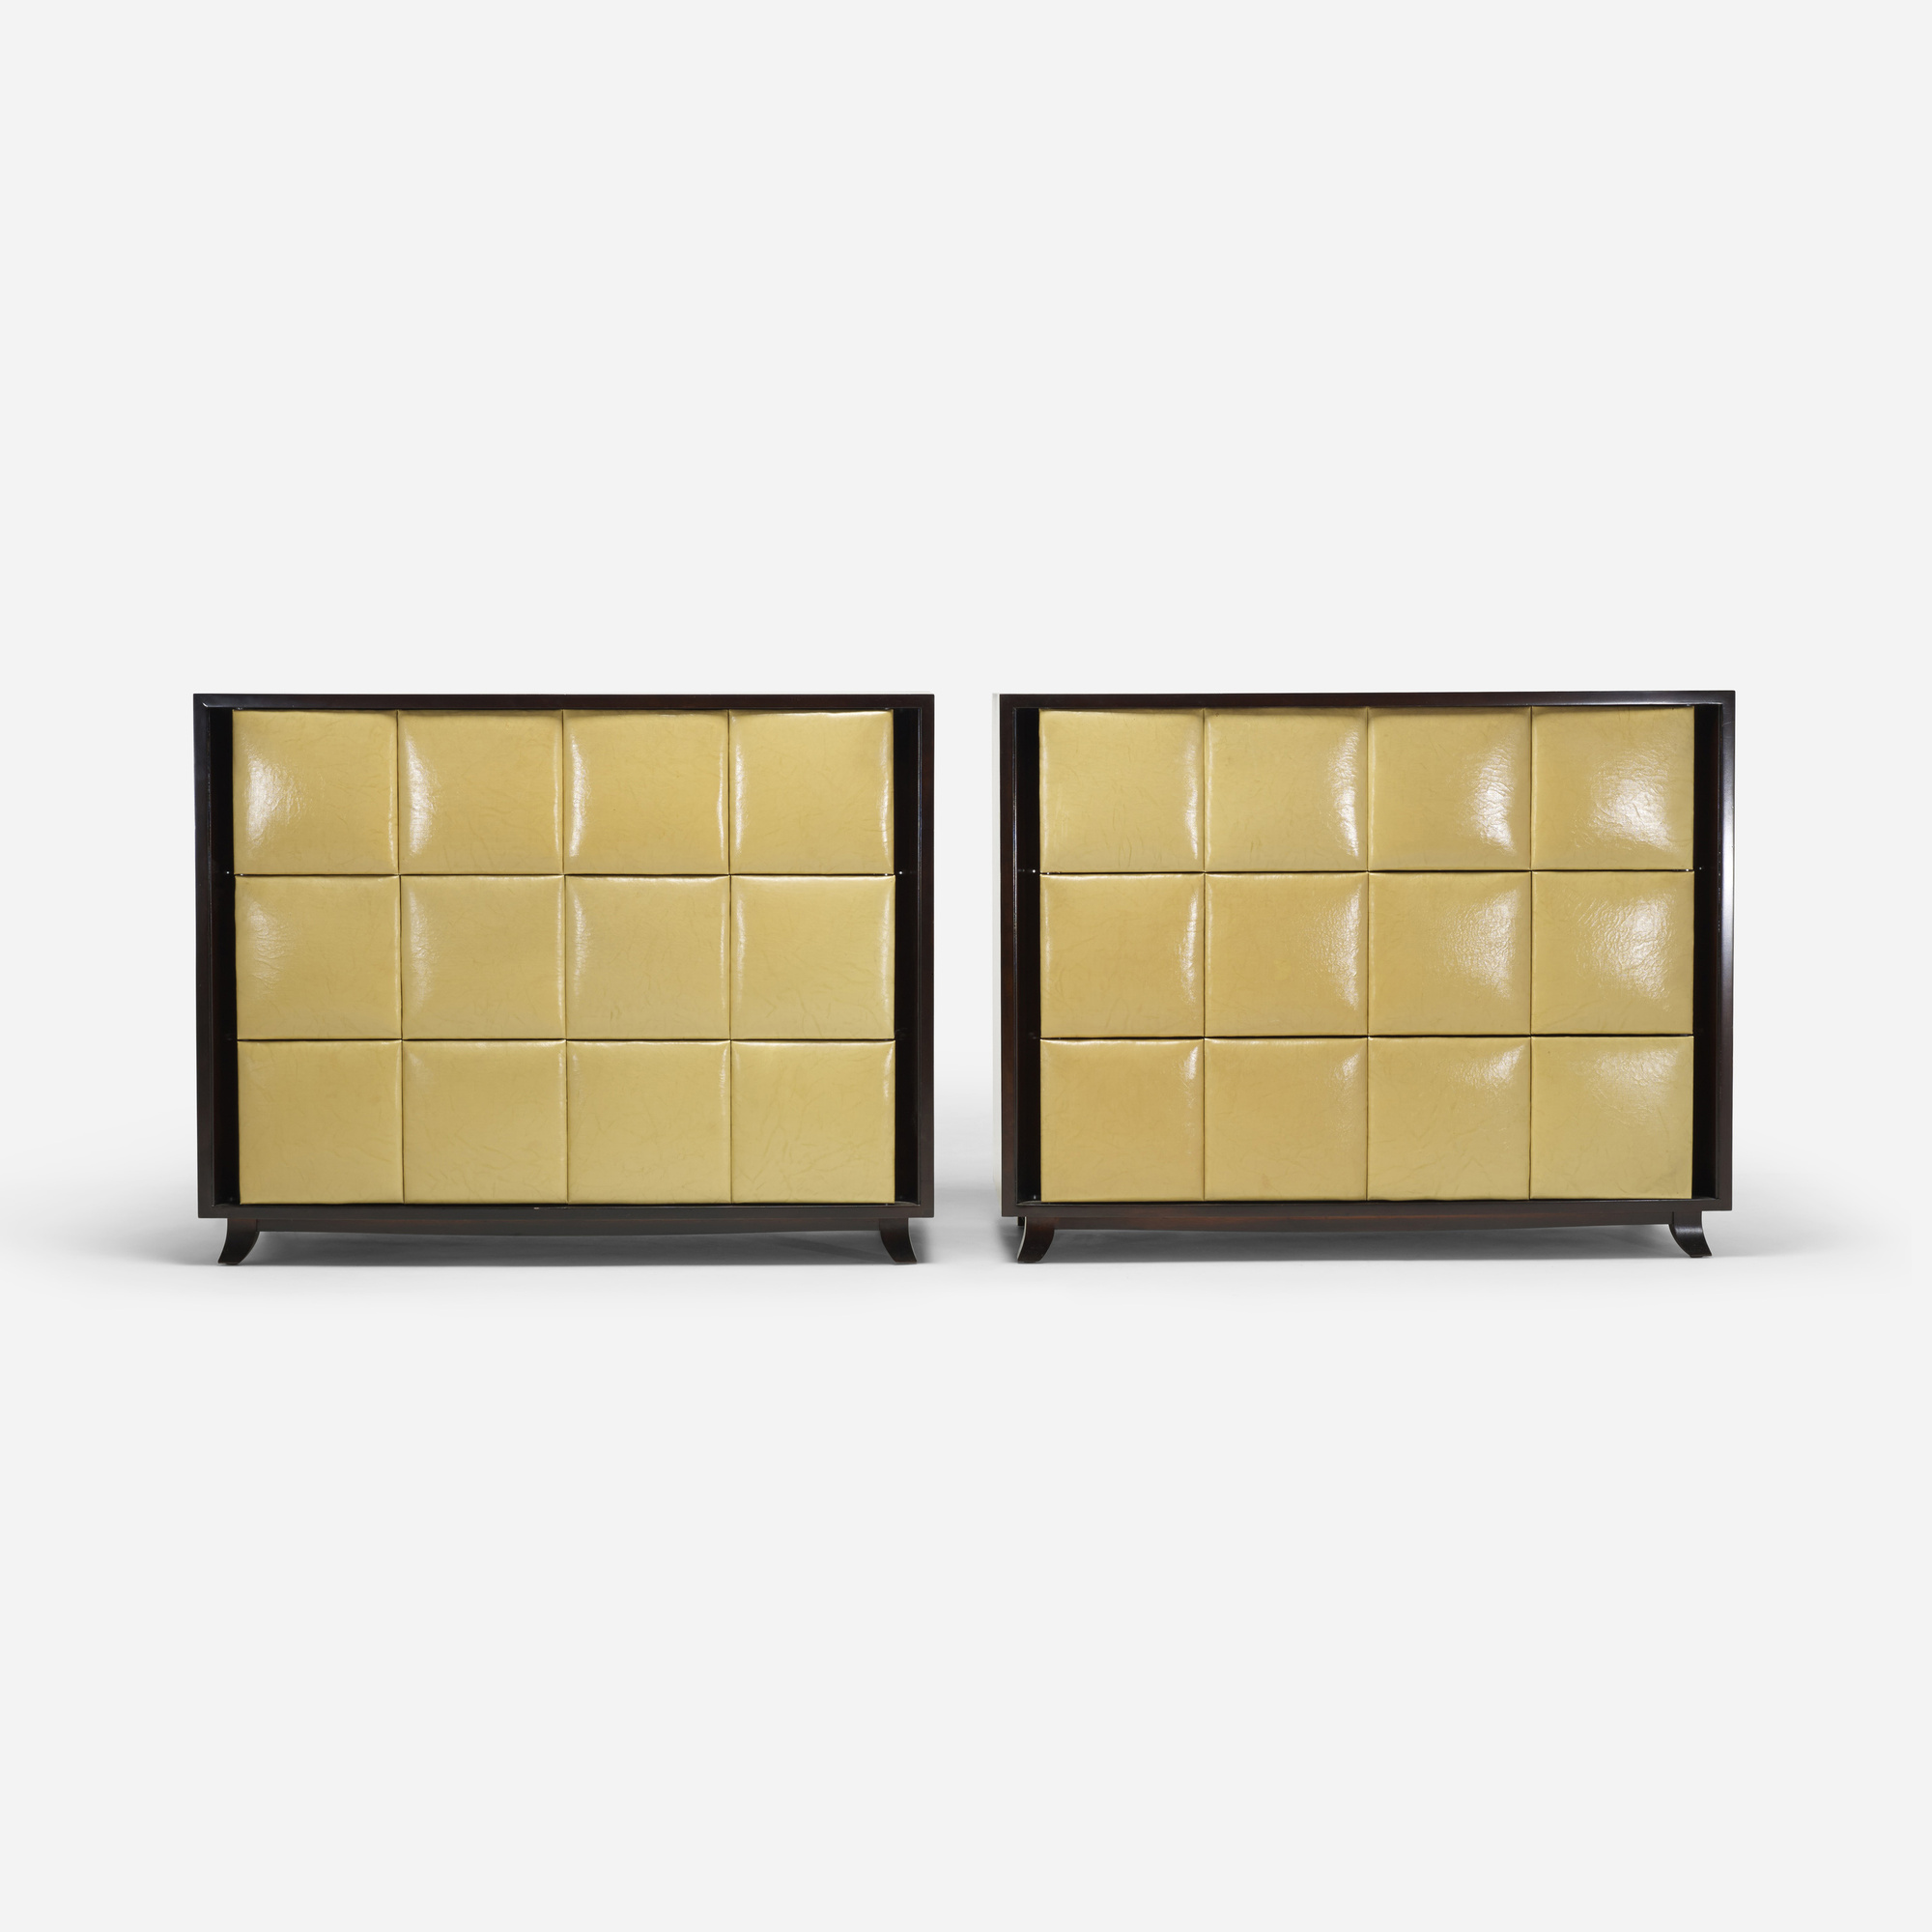 267: Gilbert Rohde / cabinets model 4140, pair (2 of 3)